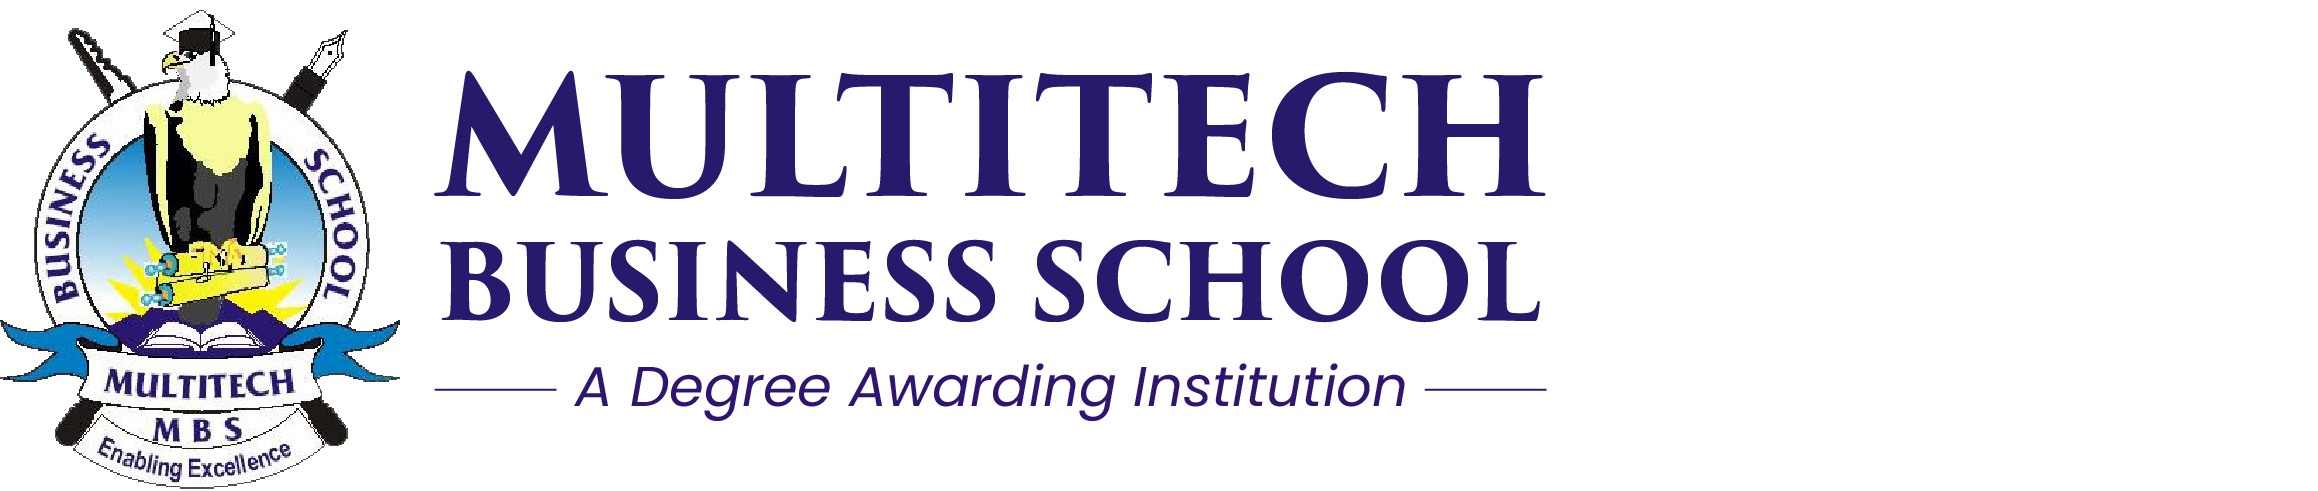 Multitech Business School